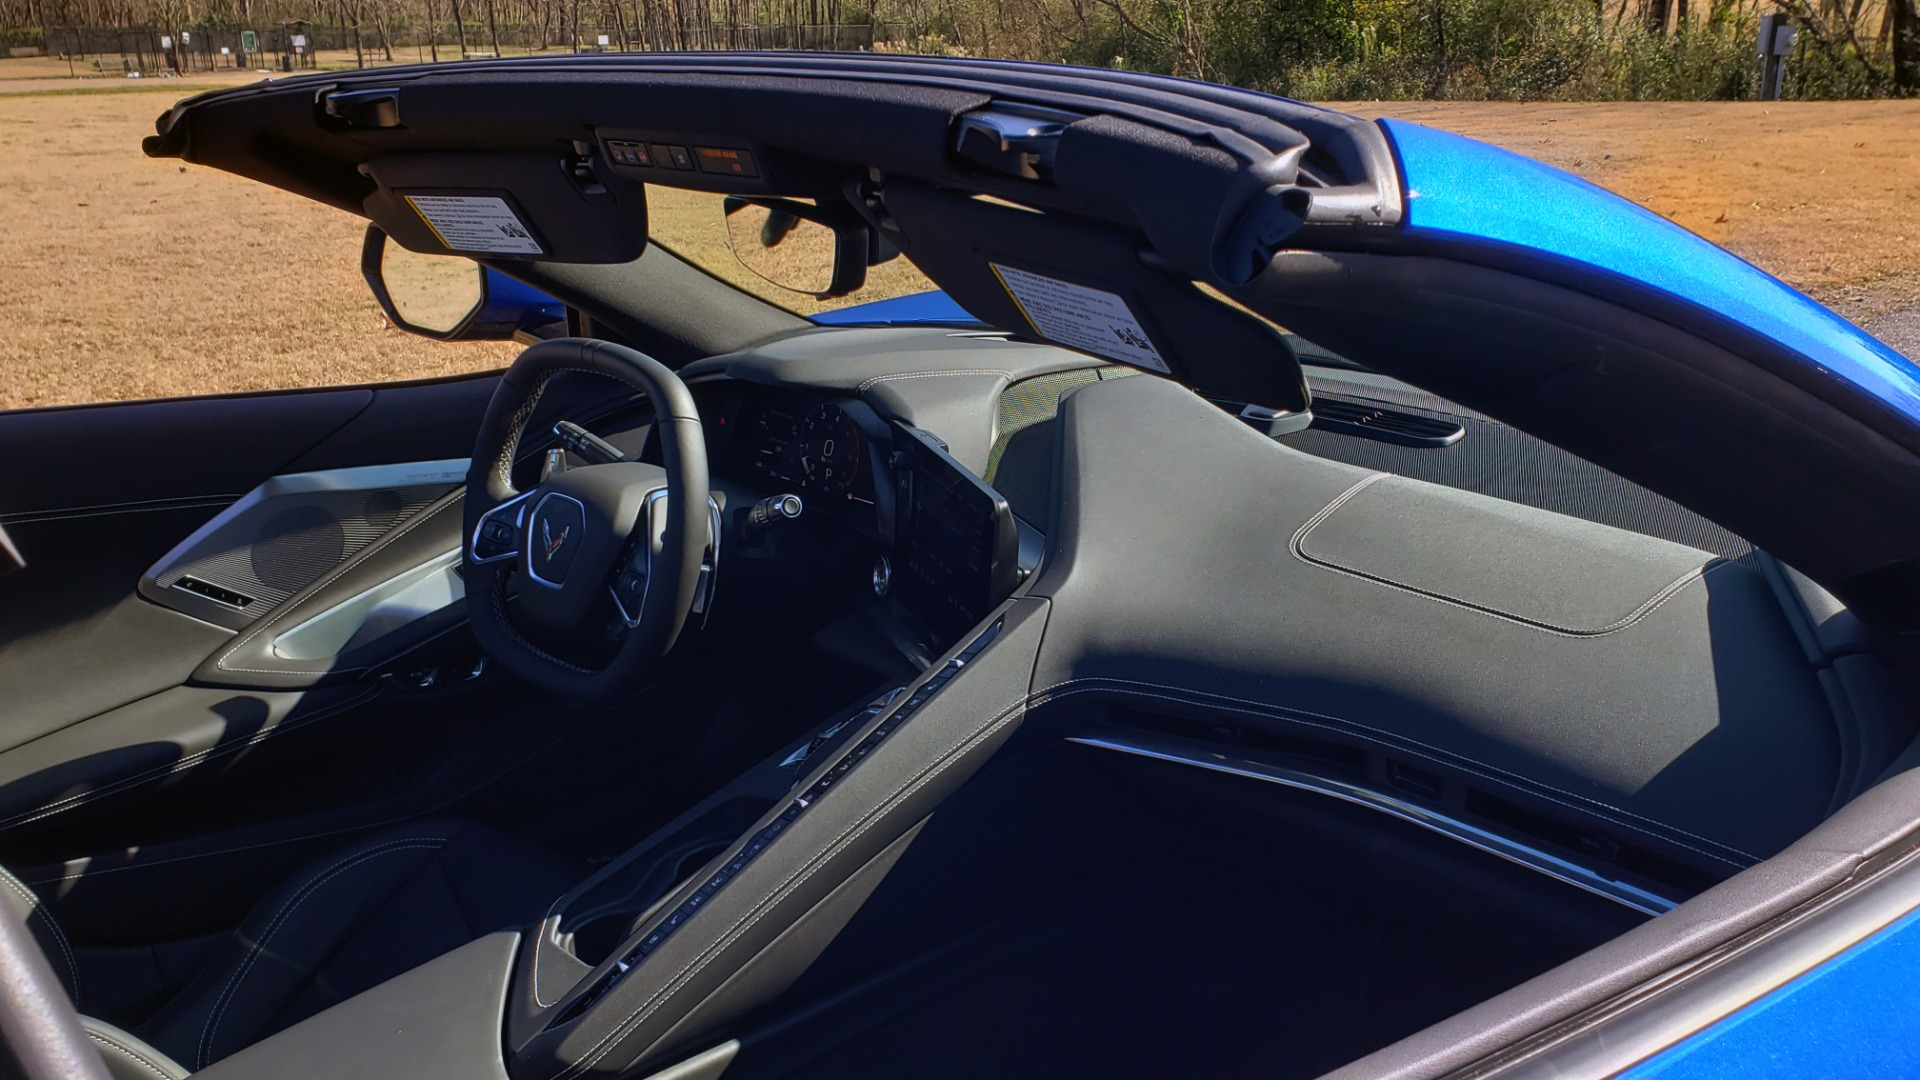 Used 2020 Chevrolet C8 CORVETTE STINGRAY 2LT COUPE / NAV / HUD / BOSE / GT2 SEATS / FRONT LIFT / REARVIEW for sale Sold at Formula Imports in Charlotte NC 28227 21